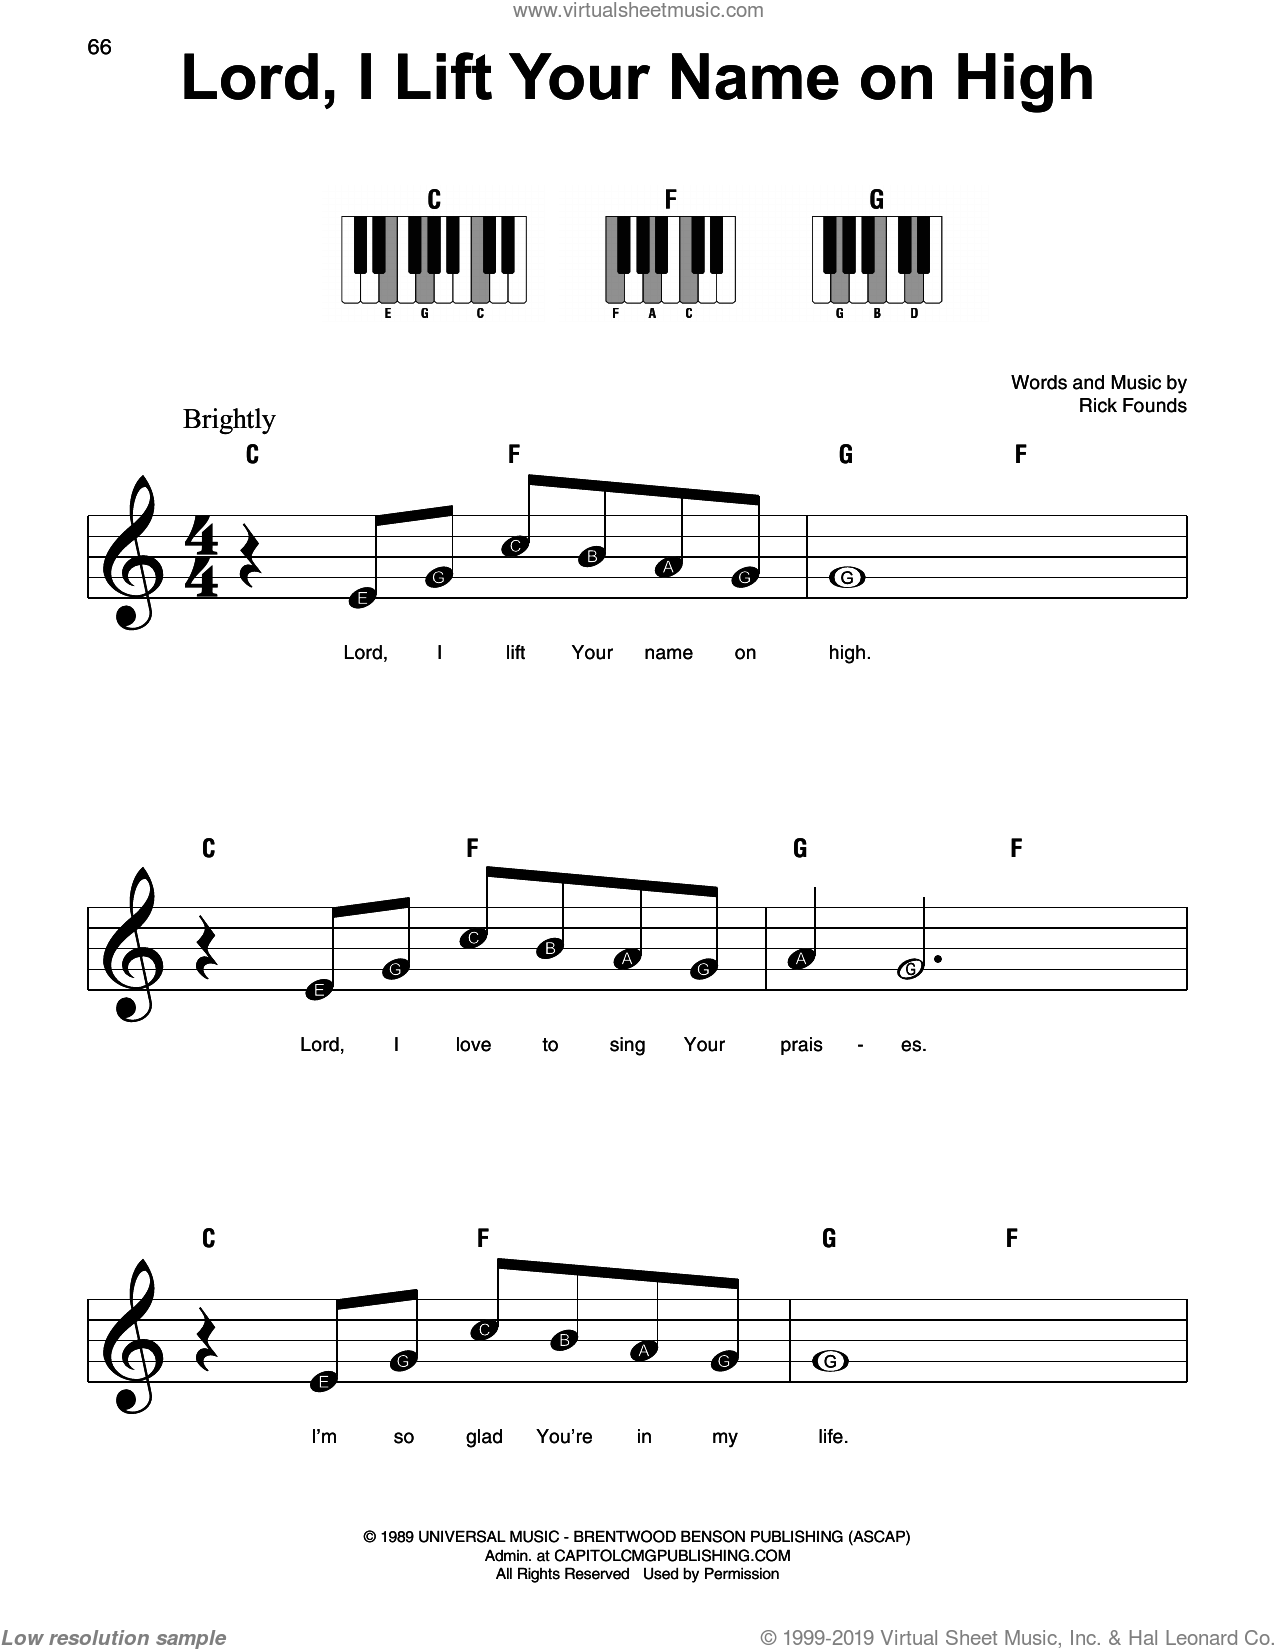 Lord, I Lift Your Name On High sheet music for piano solo by Rick Founds, beginner skill level